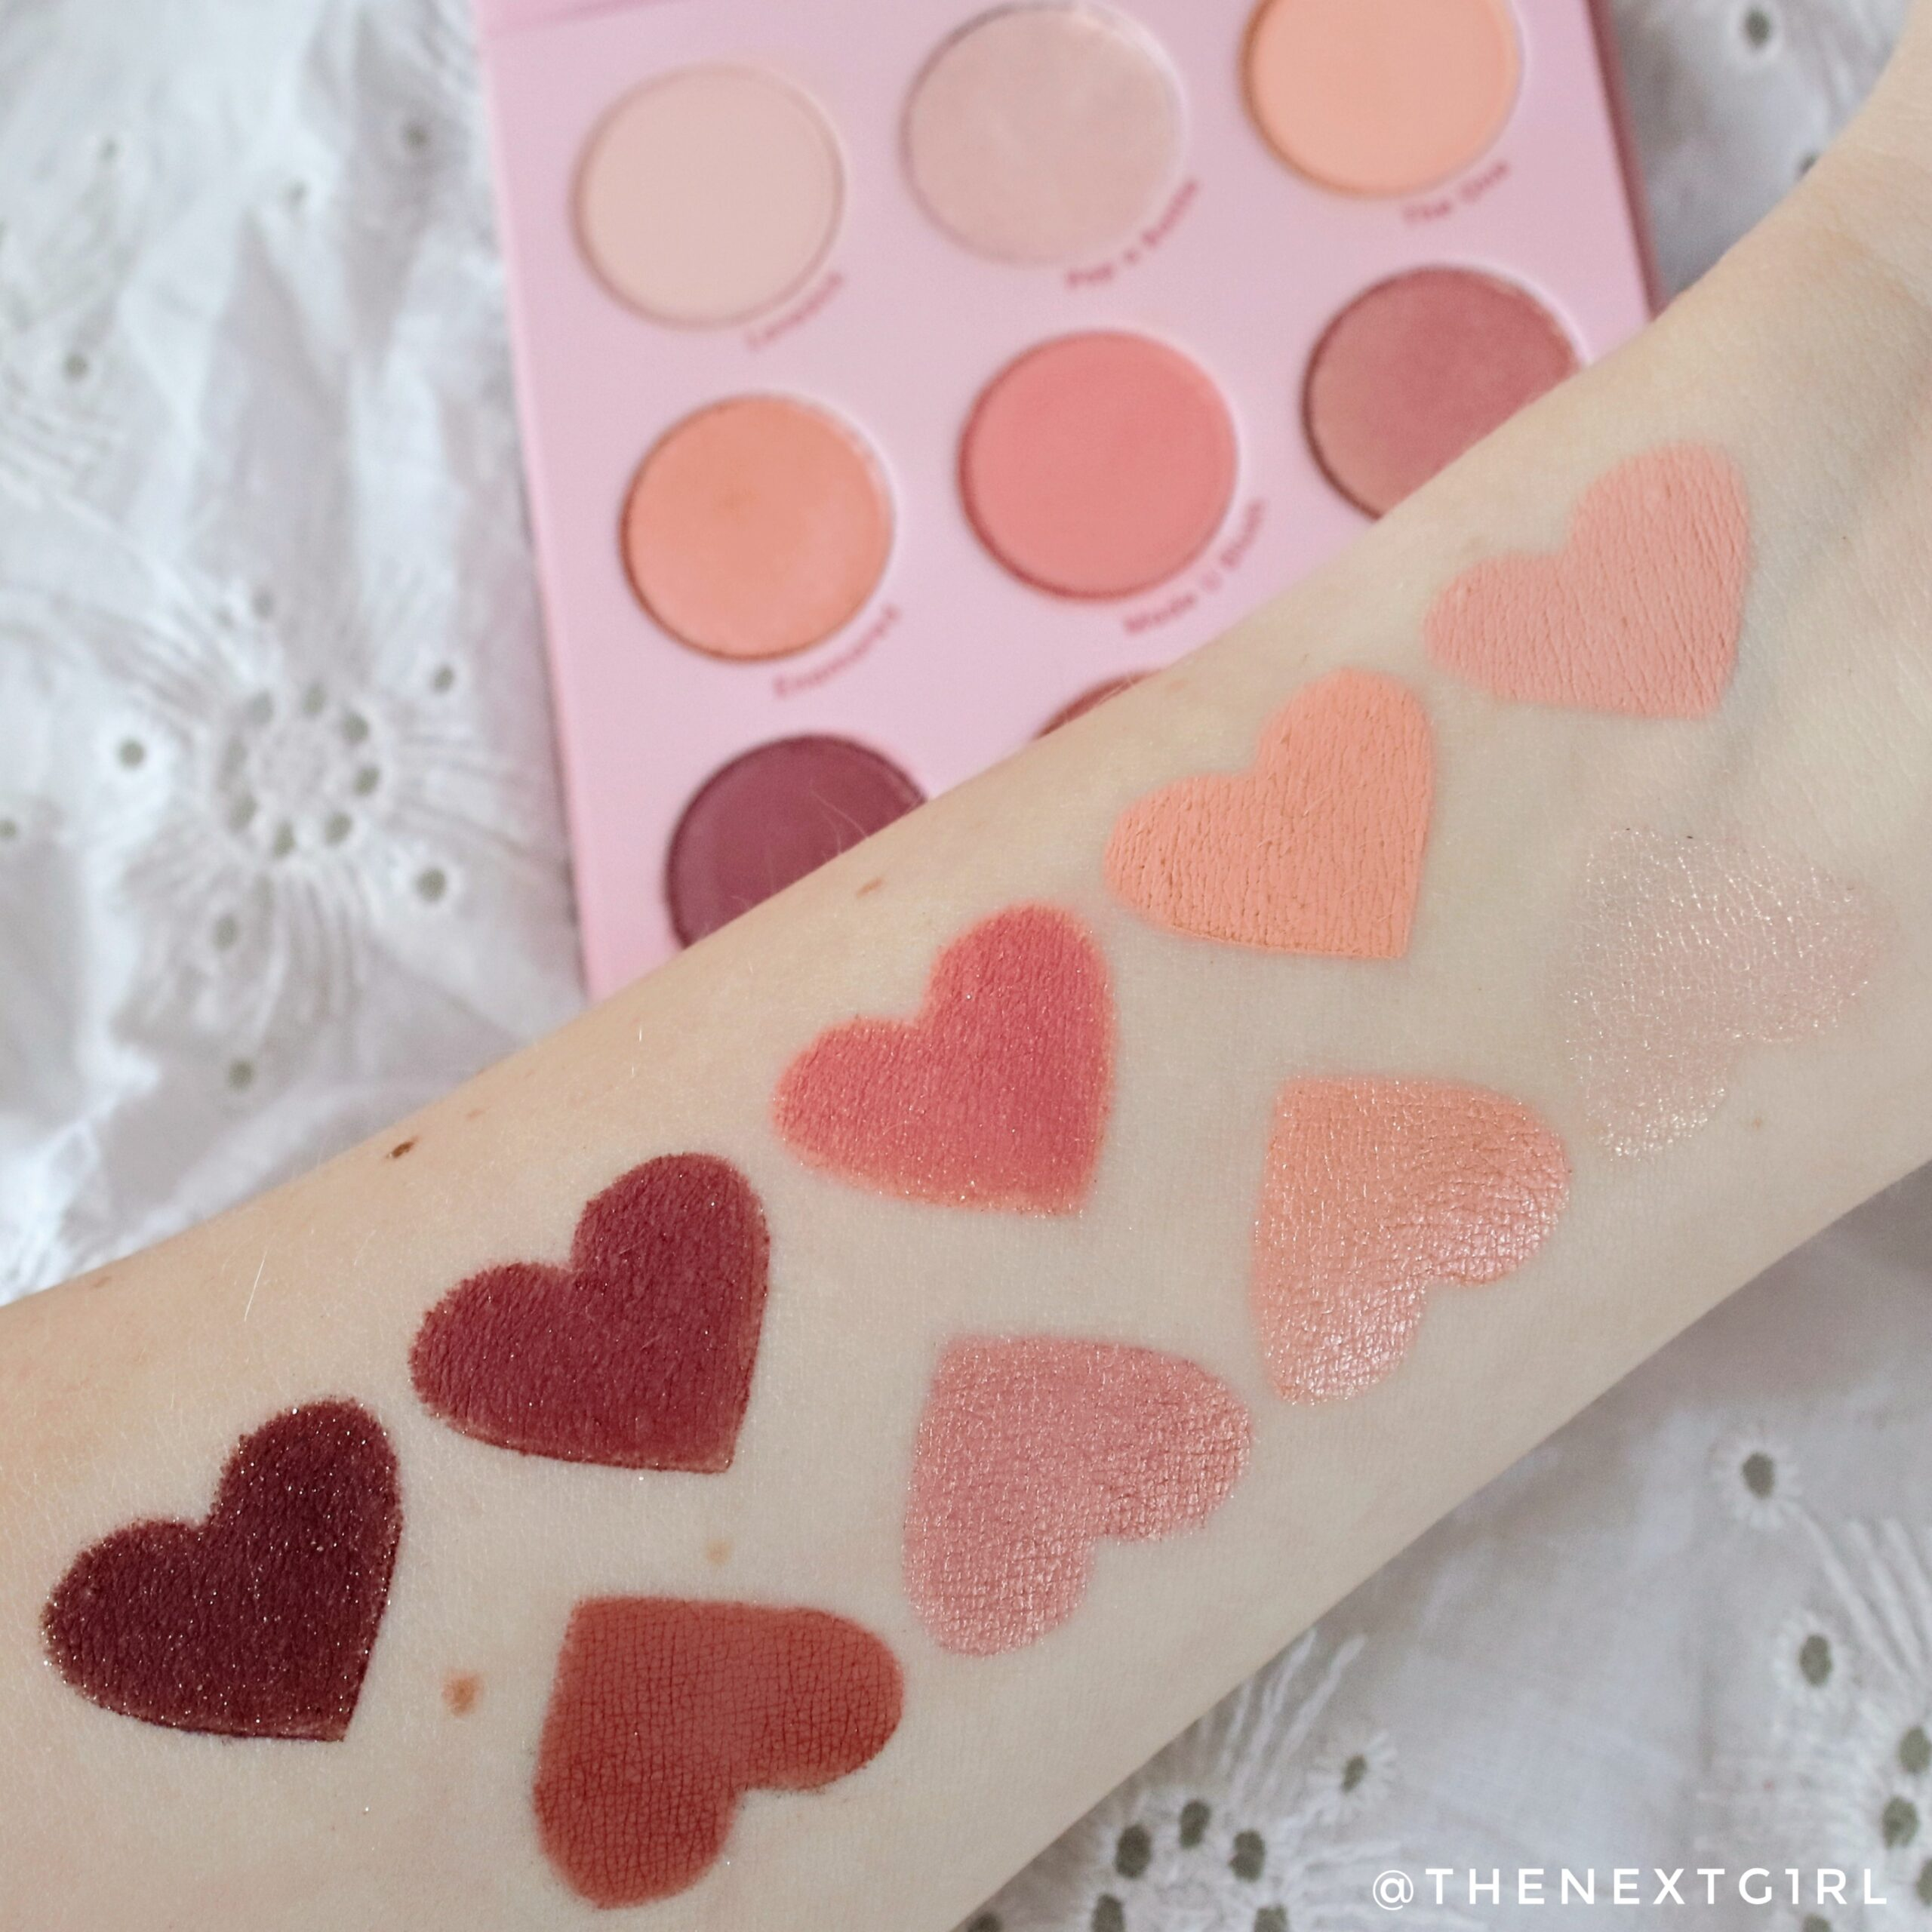 Swatches colourpop Blush Crush oogschaduw